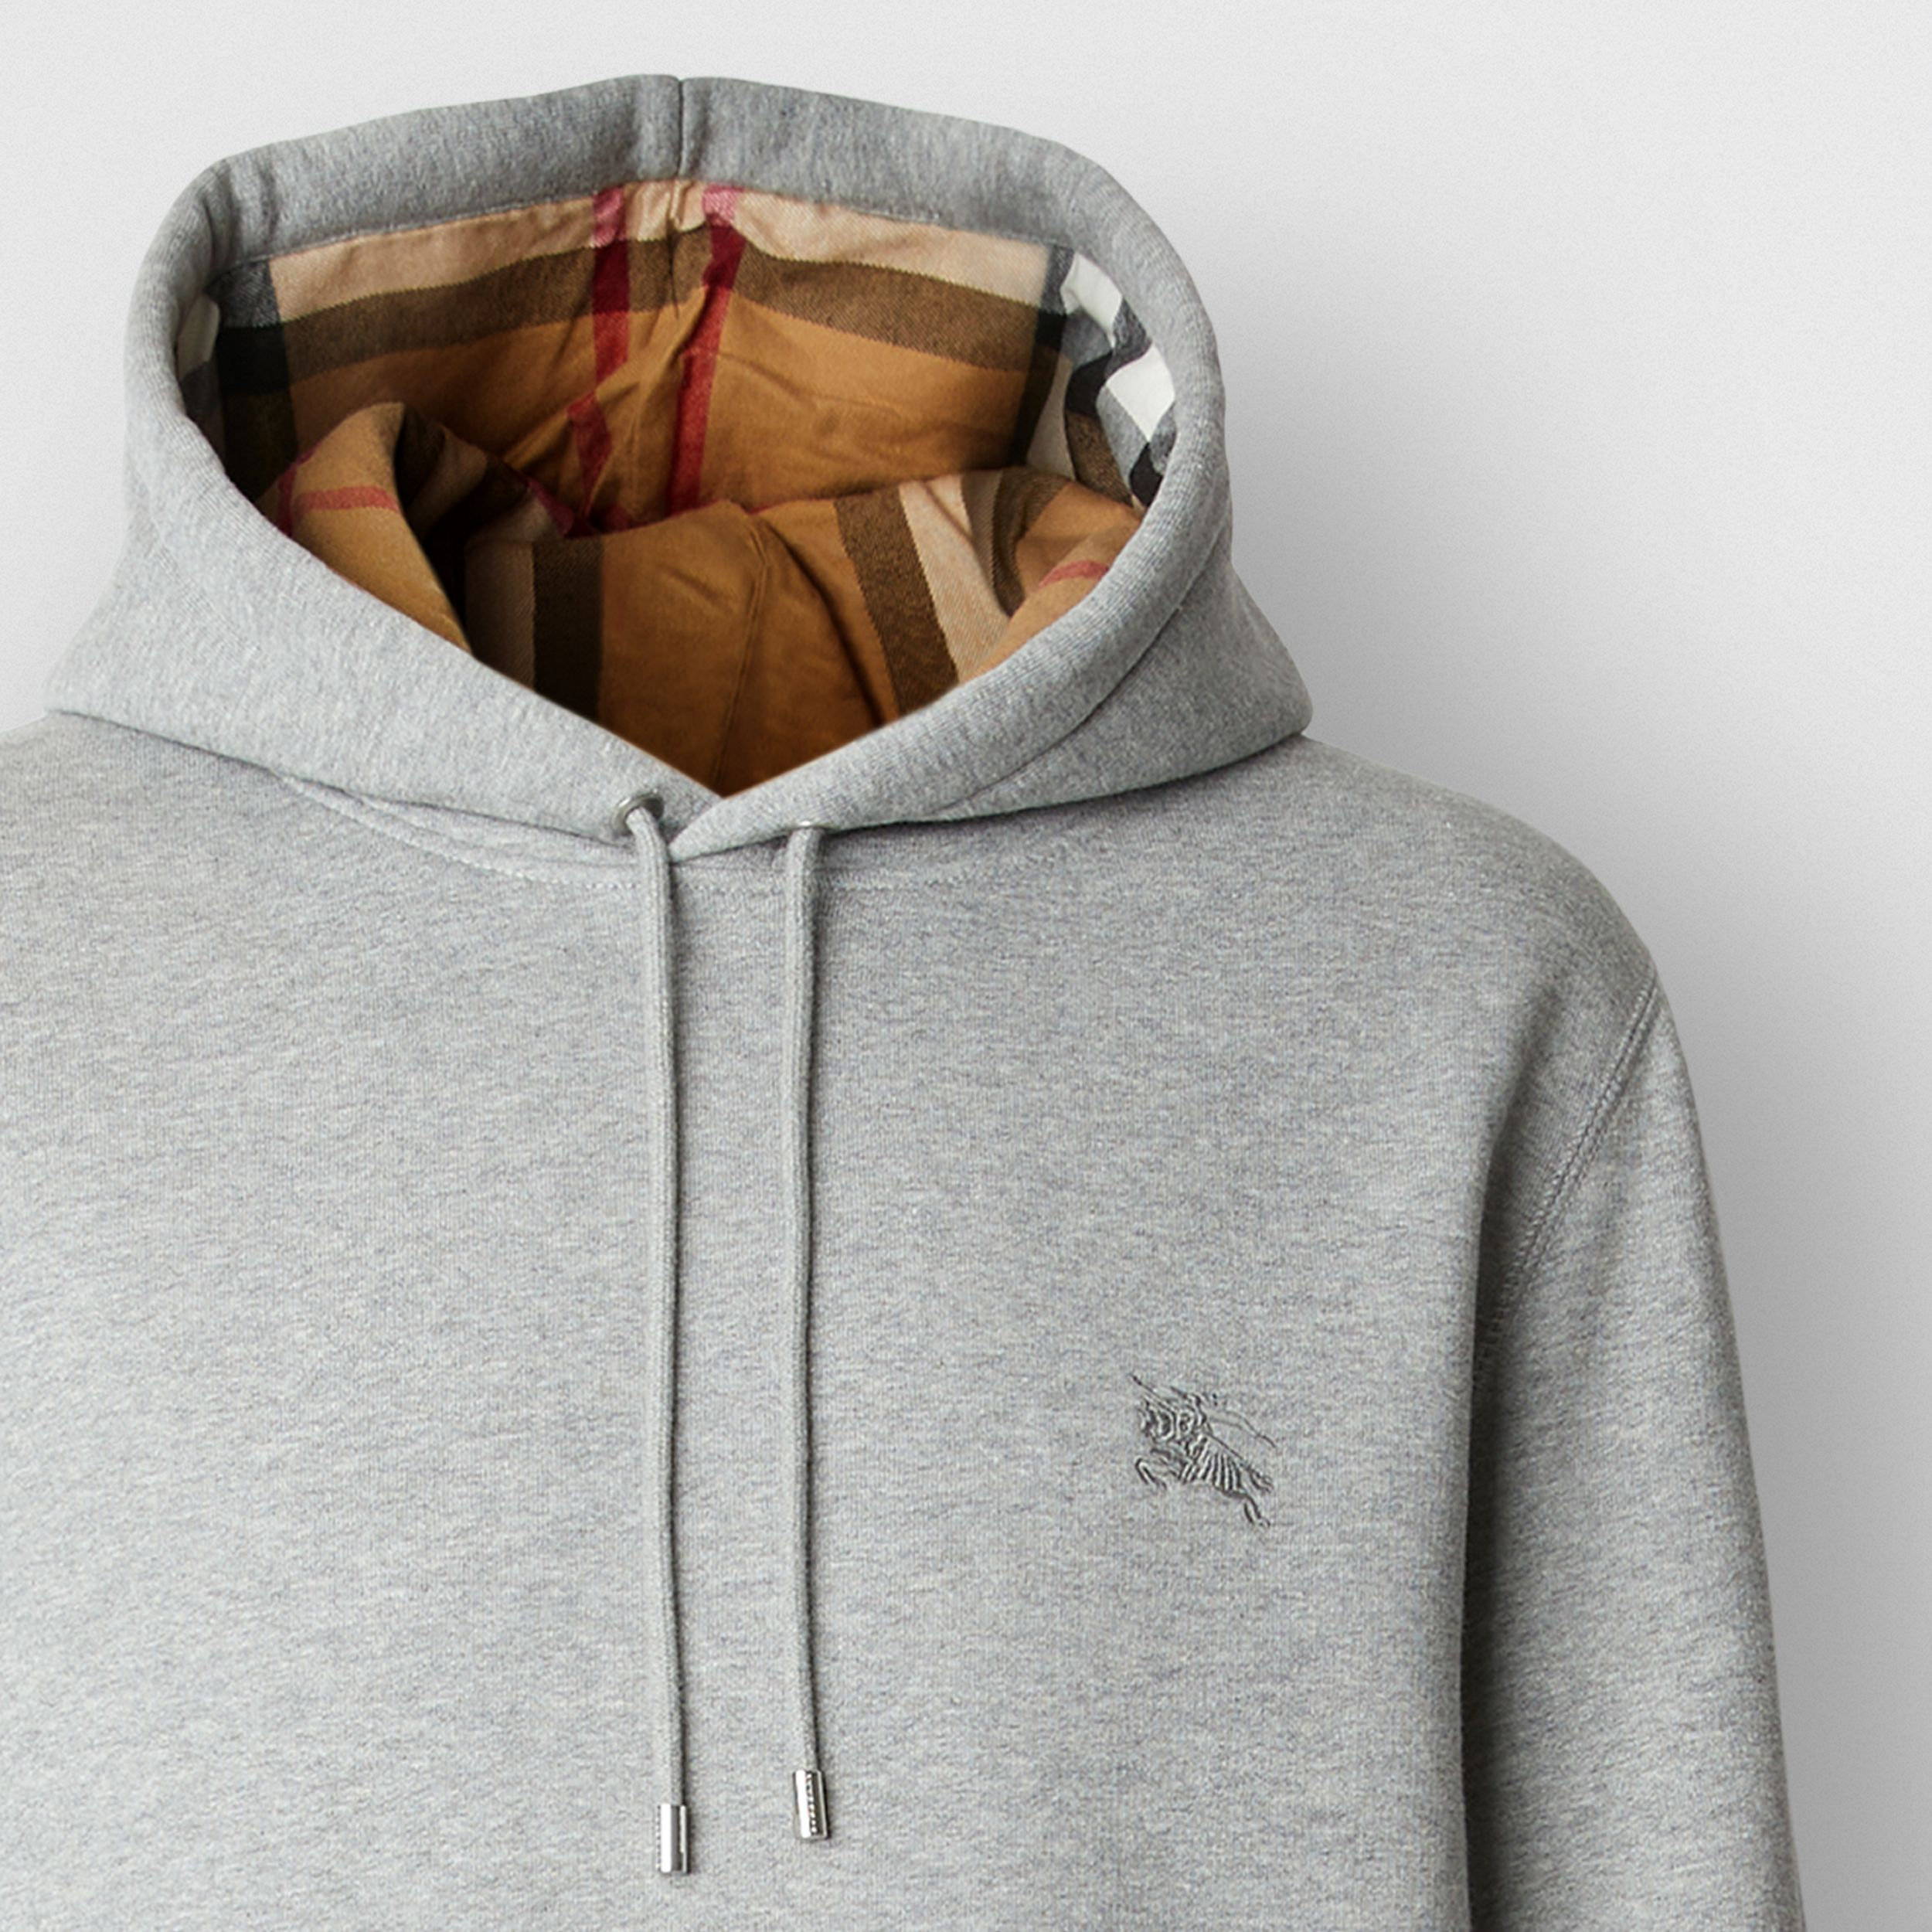 Embroidered EKD Cotton Blend Hoodie in Pale Grey Melange - Men | Burberry Canada - 2